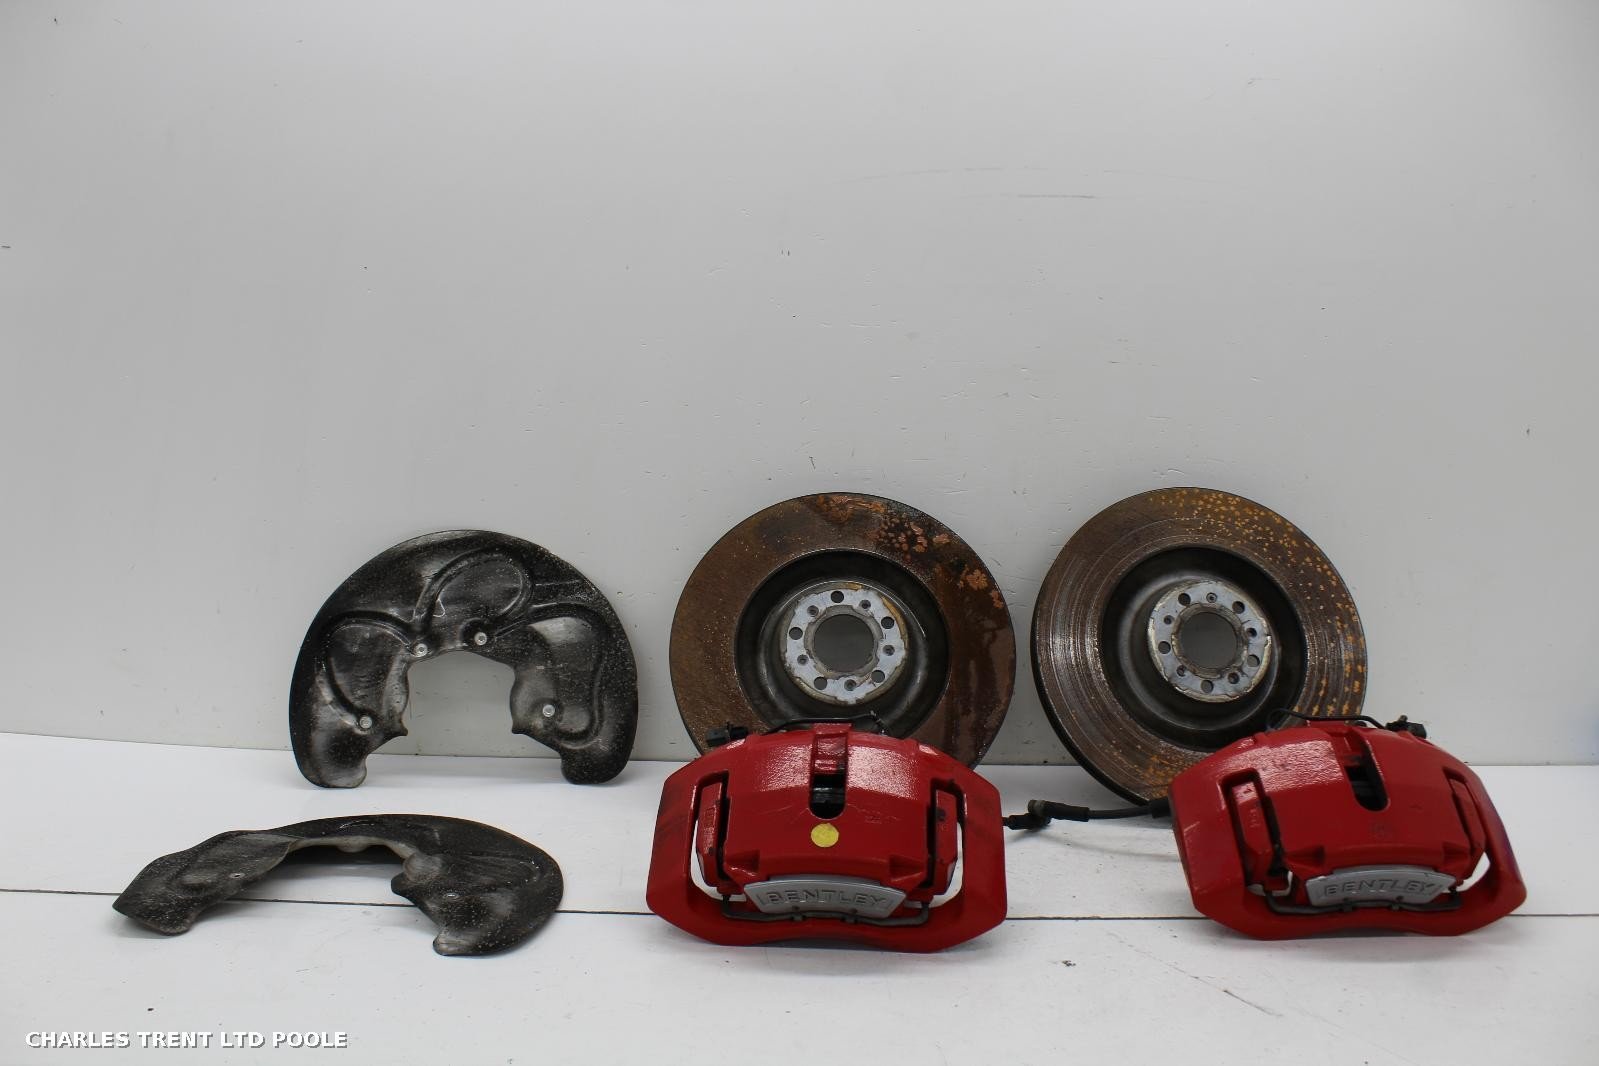 2012 - BENTLEY - CONTINENTAL GT - BRAKE KITS